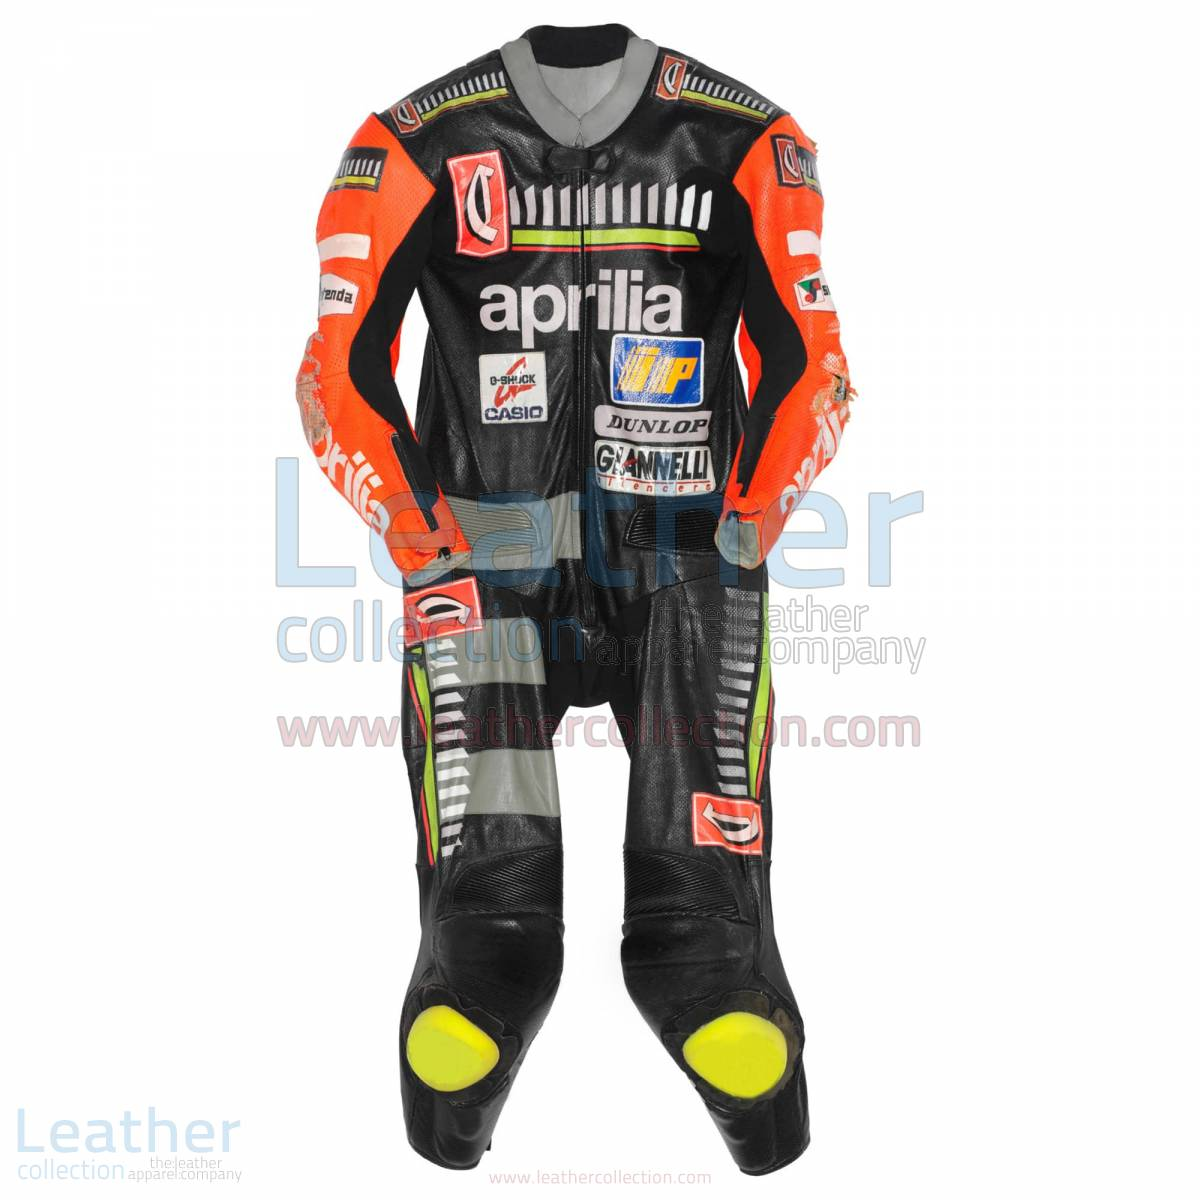 Max Biaggi Aprilia GP 1995 Racing Leathers – Aprilia Suit